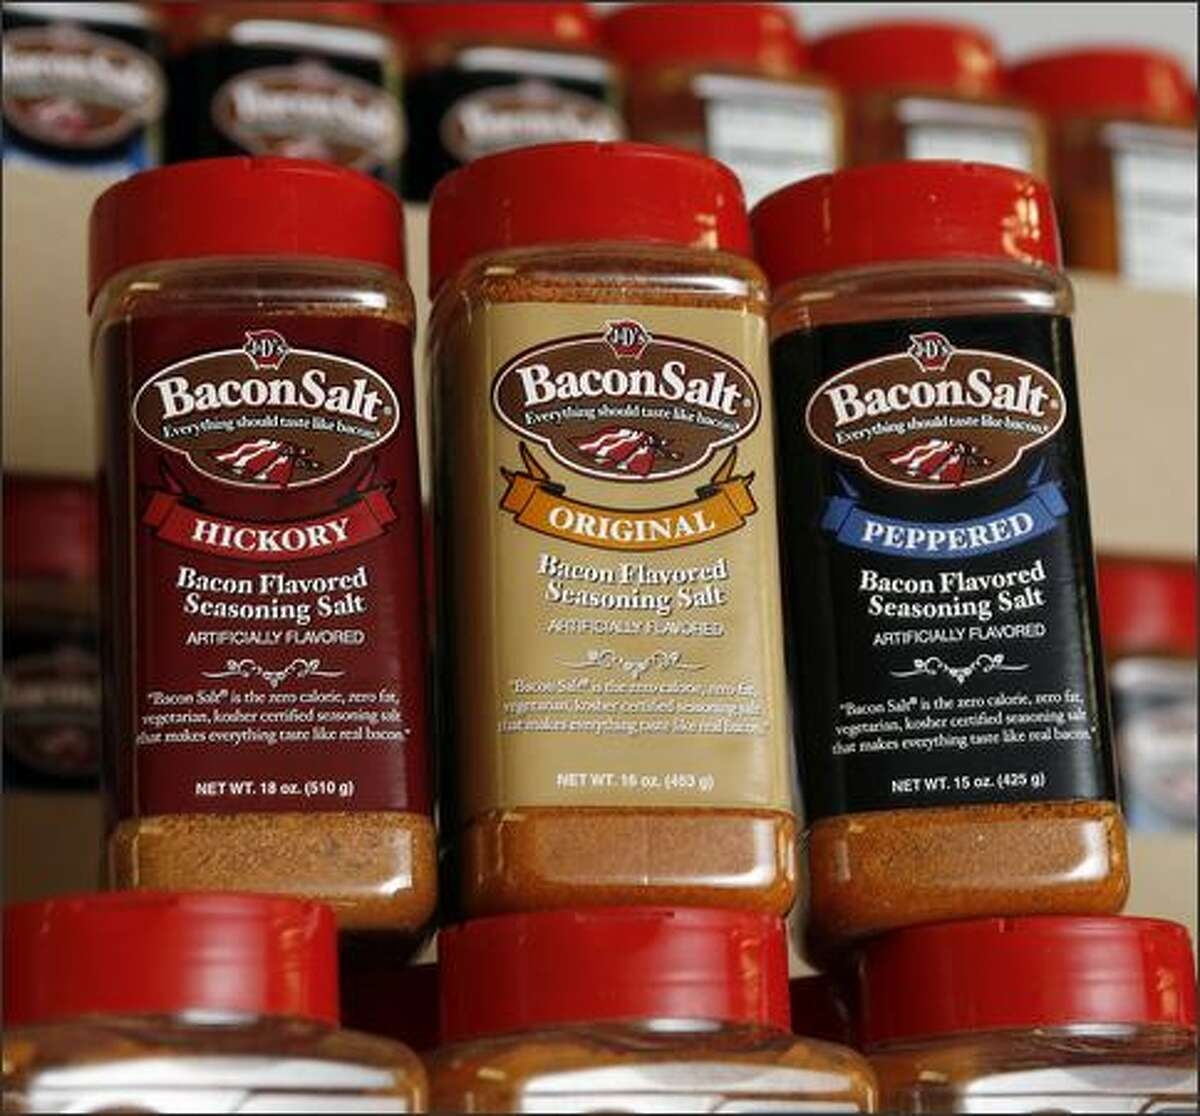 The three flavors of Bacon Salt have a devoted following worldwide. The kosher product is especially popular among American troops in the Middle East.